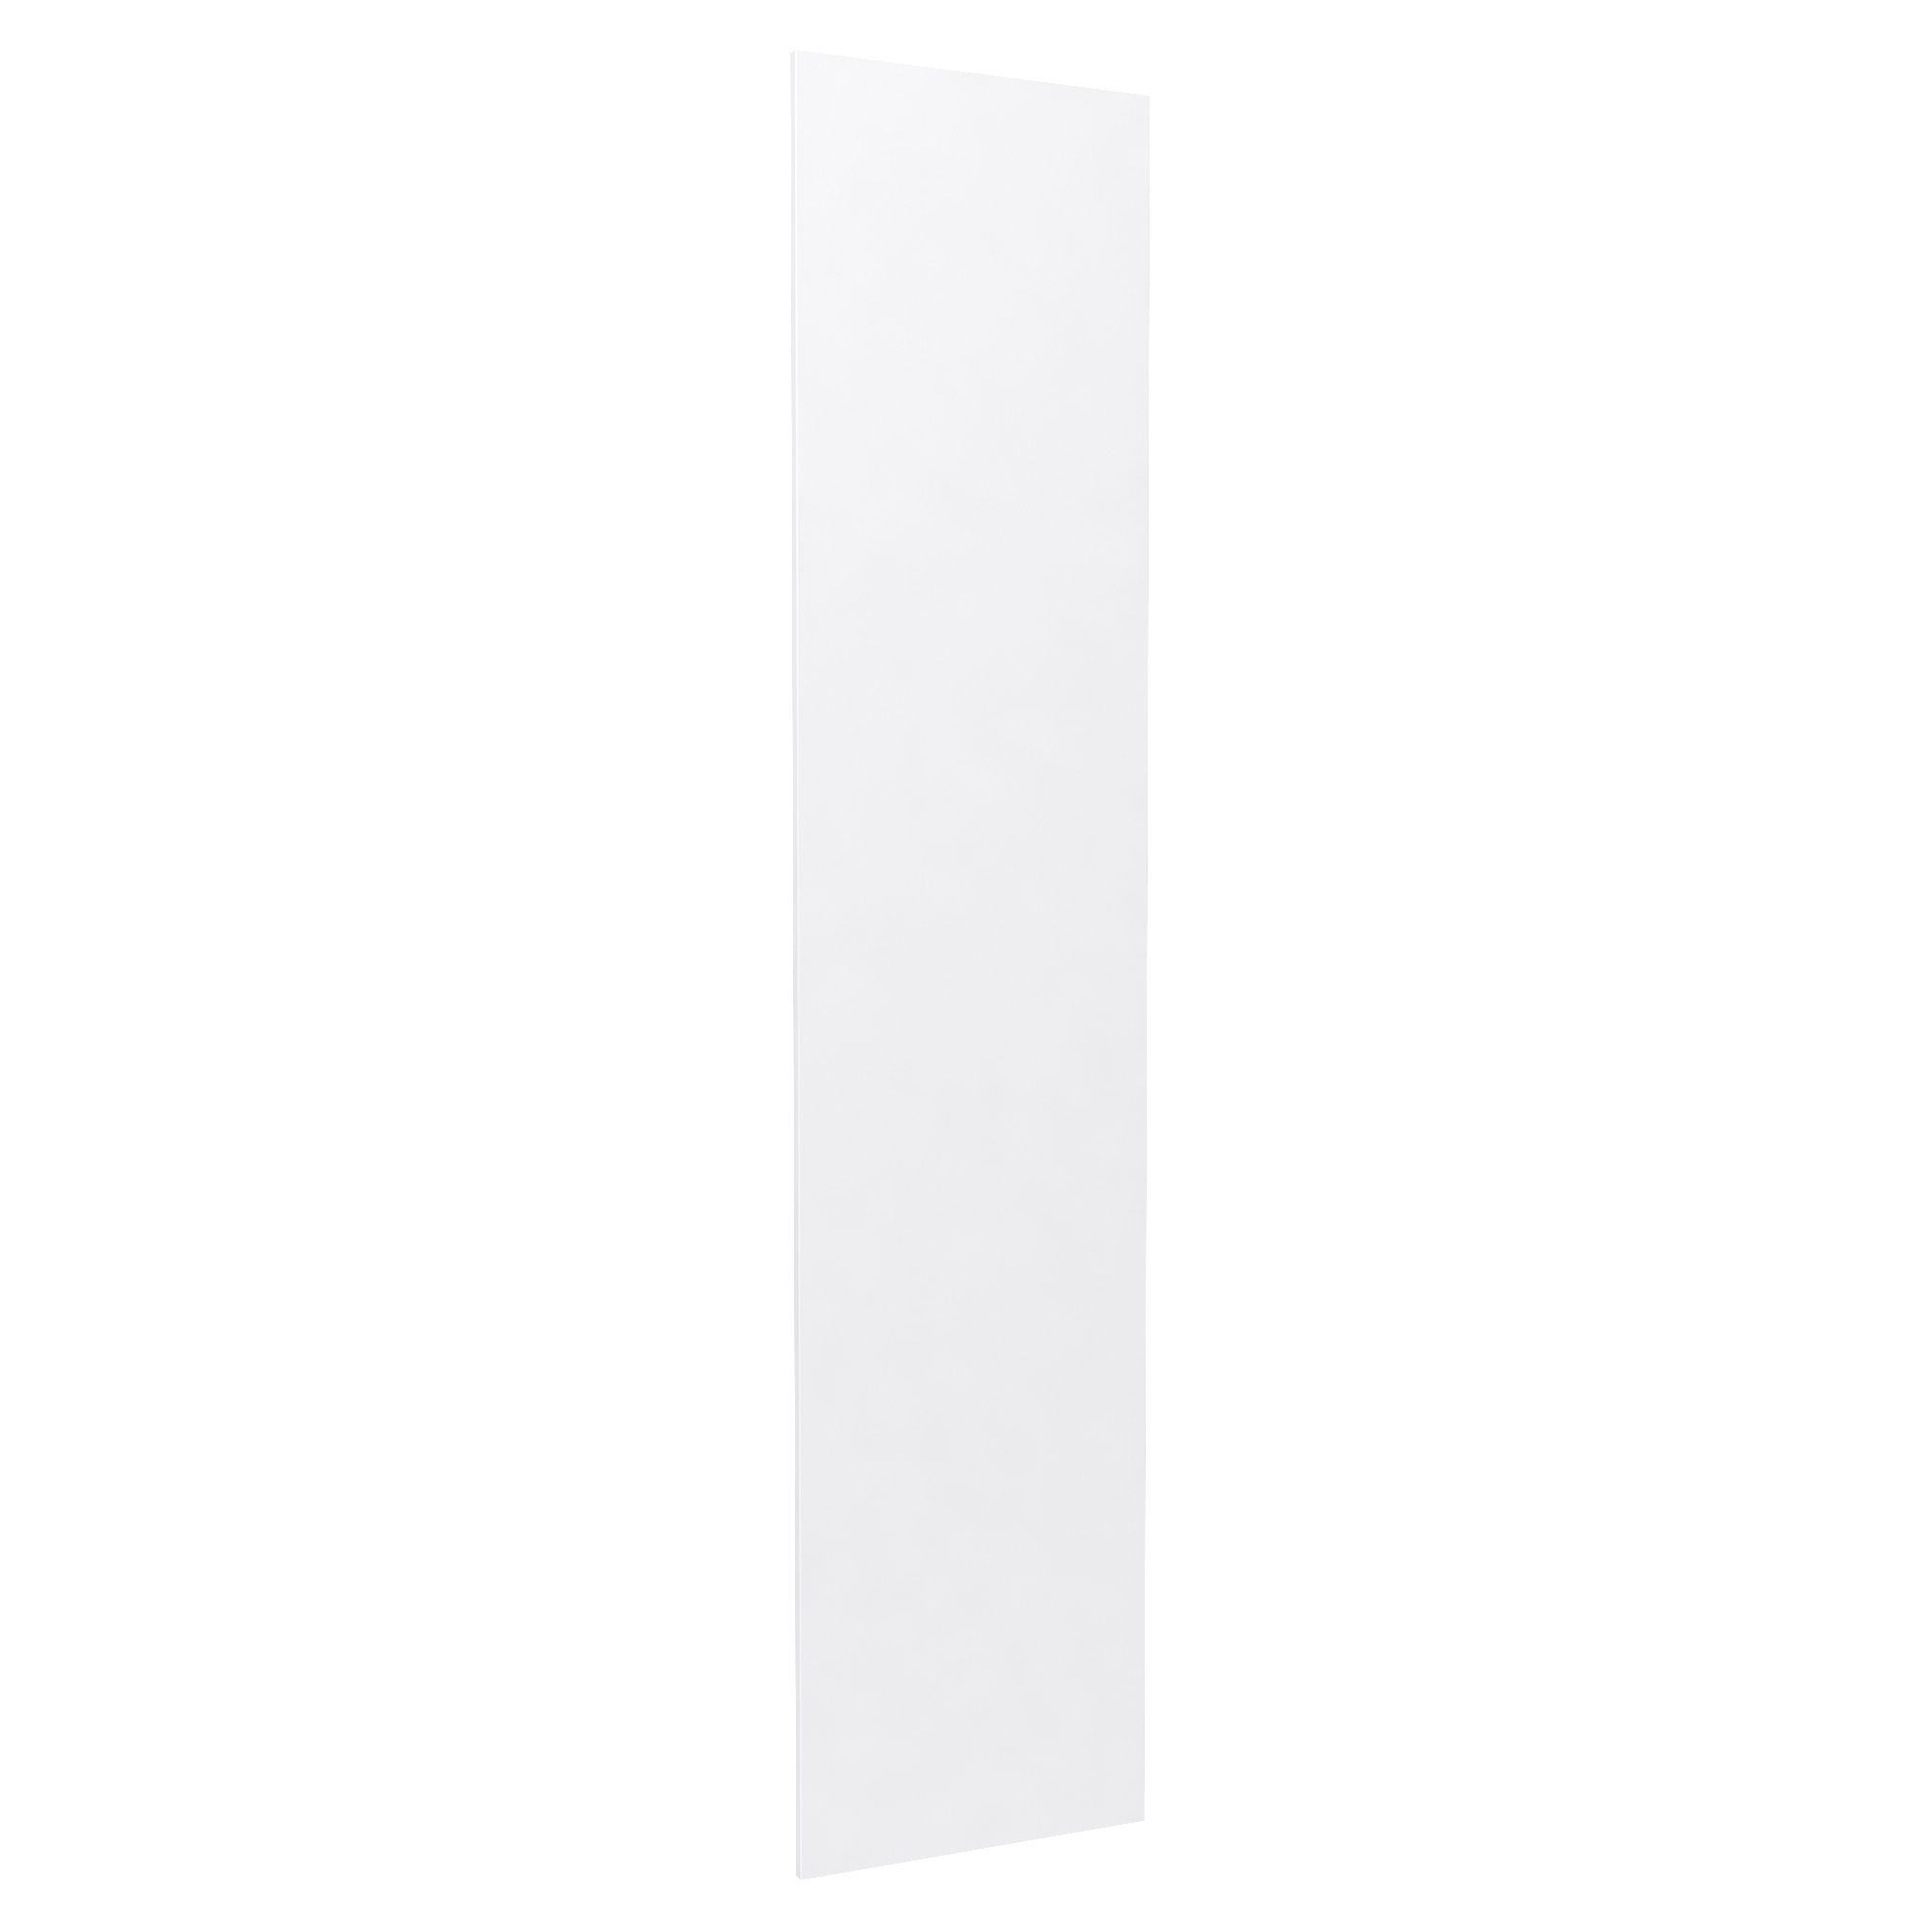 Darwin Modular White Large Wardrobe Door (h)2288mm (w)497mm